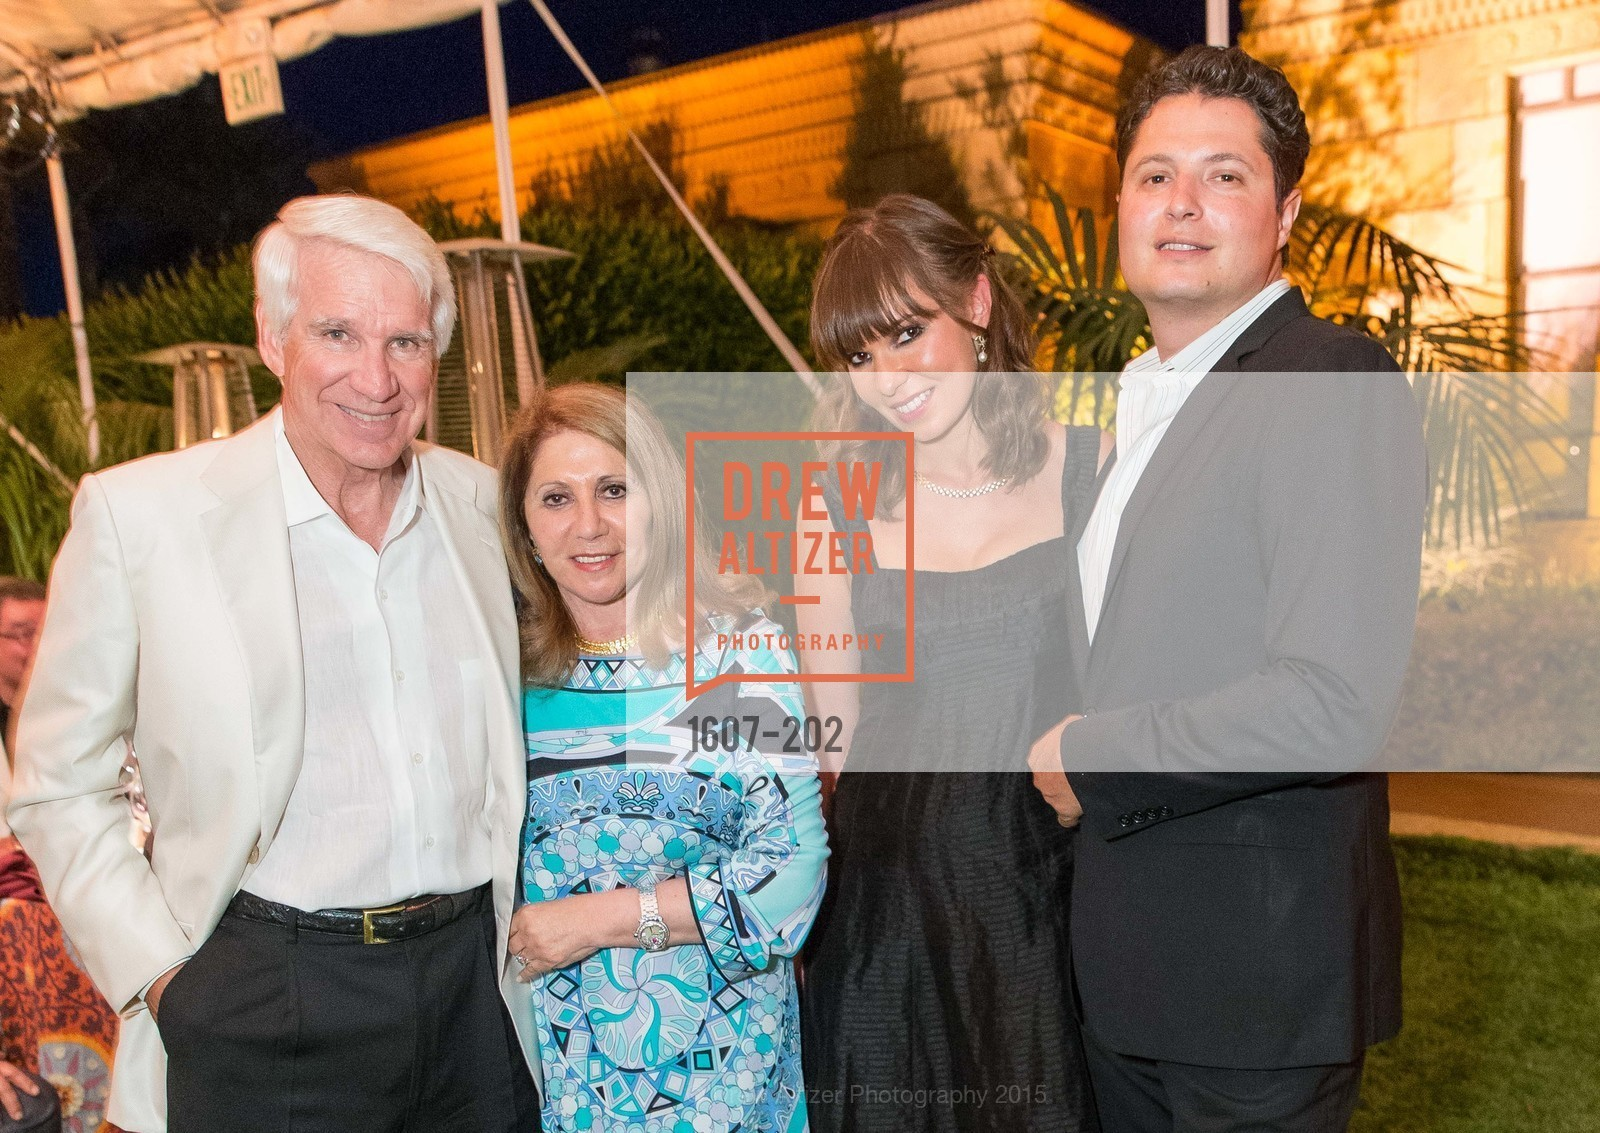 Timothy Blackburn, Athena Blackburn, Olya Troxel, Serge Troxel, Festival del Sole Patron Dinner at Darioush Winery, Darioush Winery. 4240 Silverado Trail, July 24th, 2015,Drew Altizer, Drew Altizer Photography, full-service event agency, private events, San Francisco photographer, photographer California